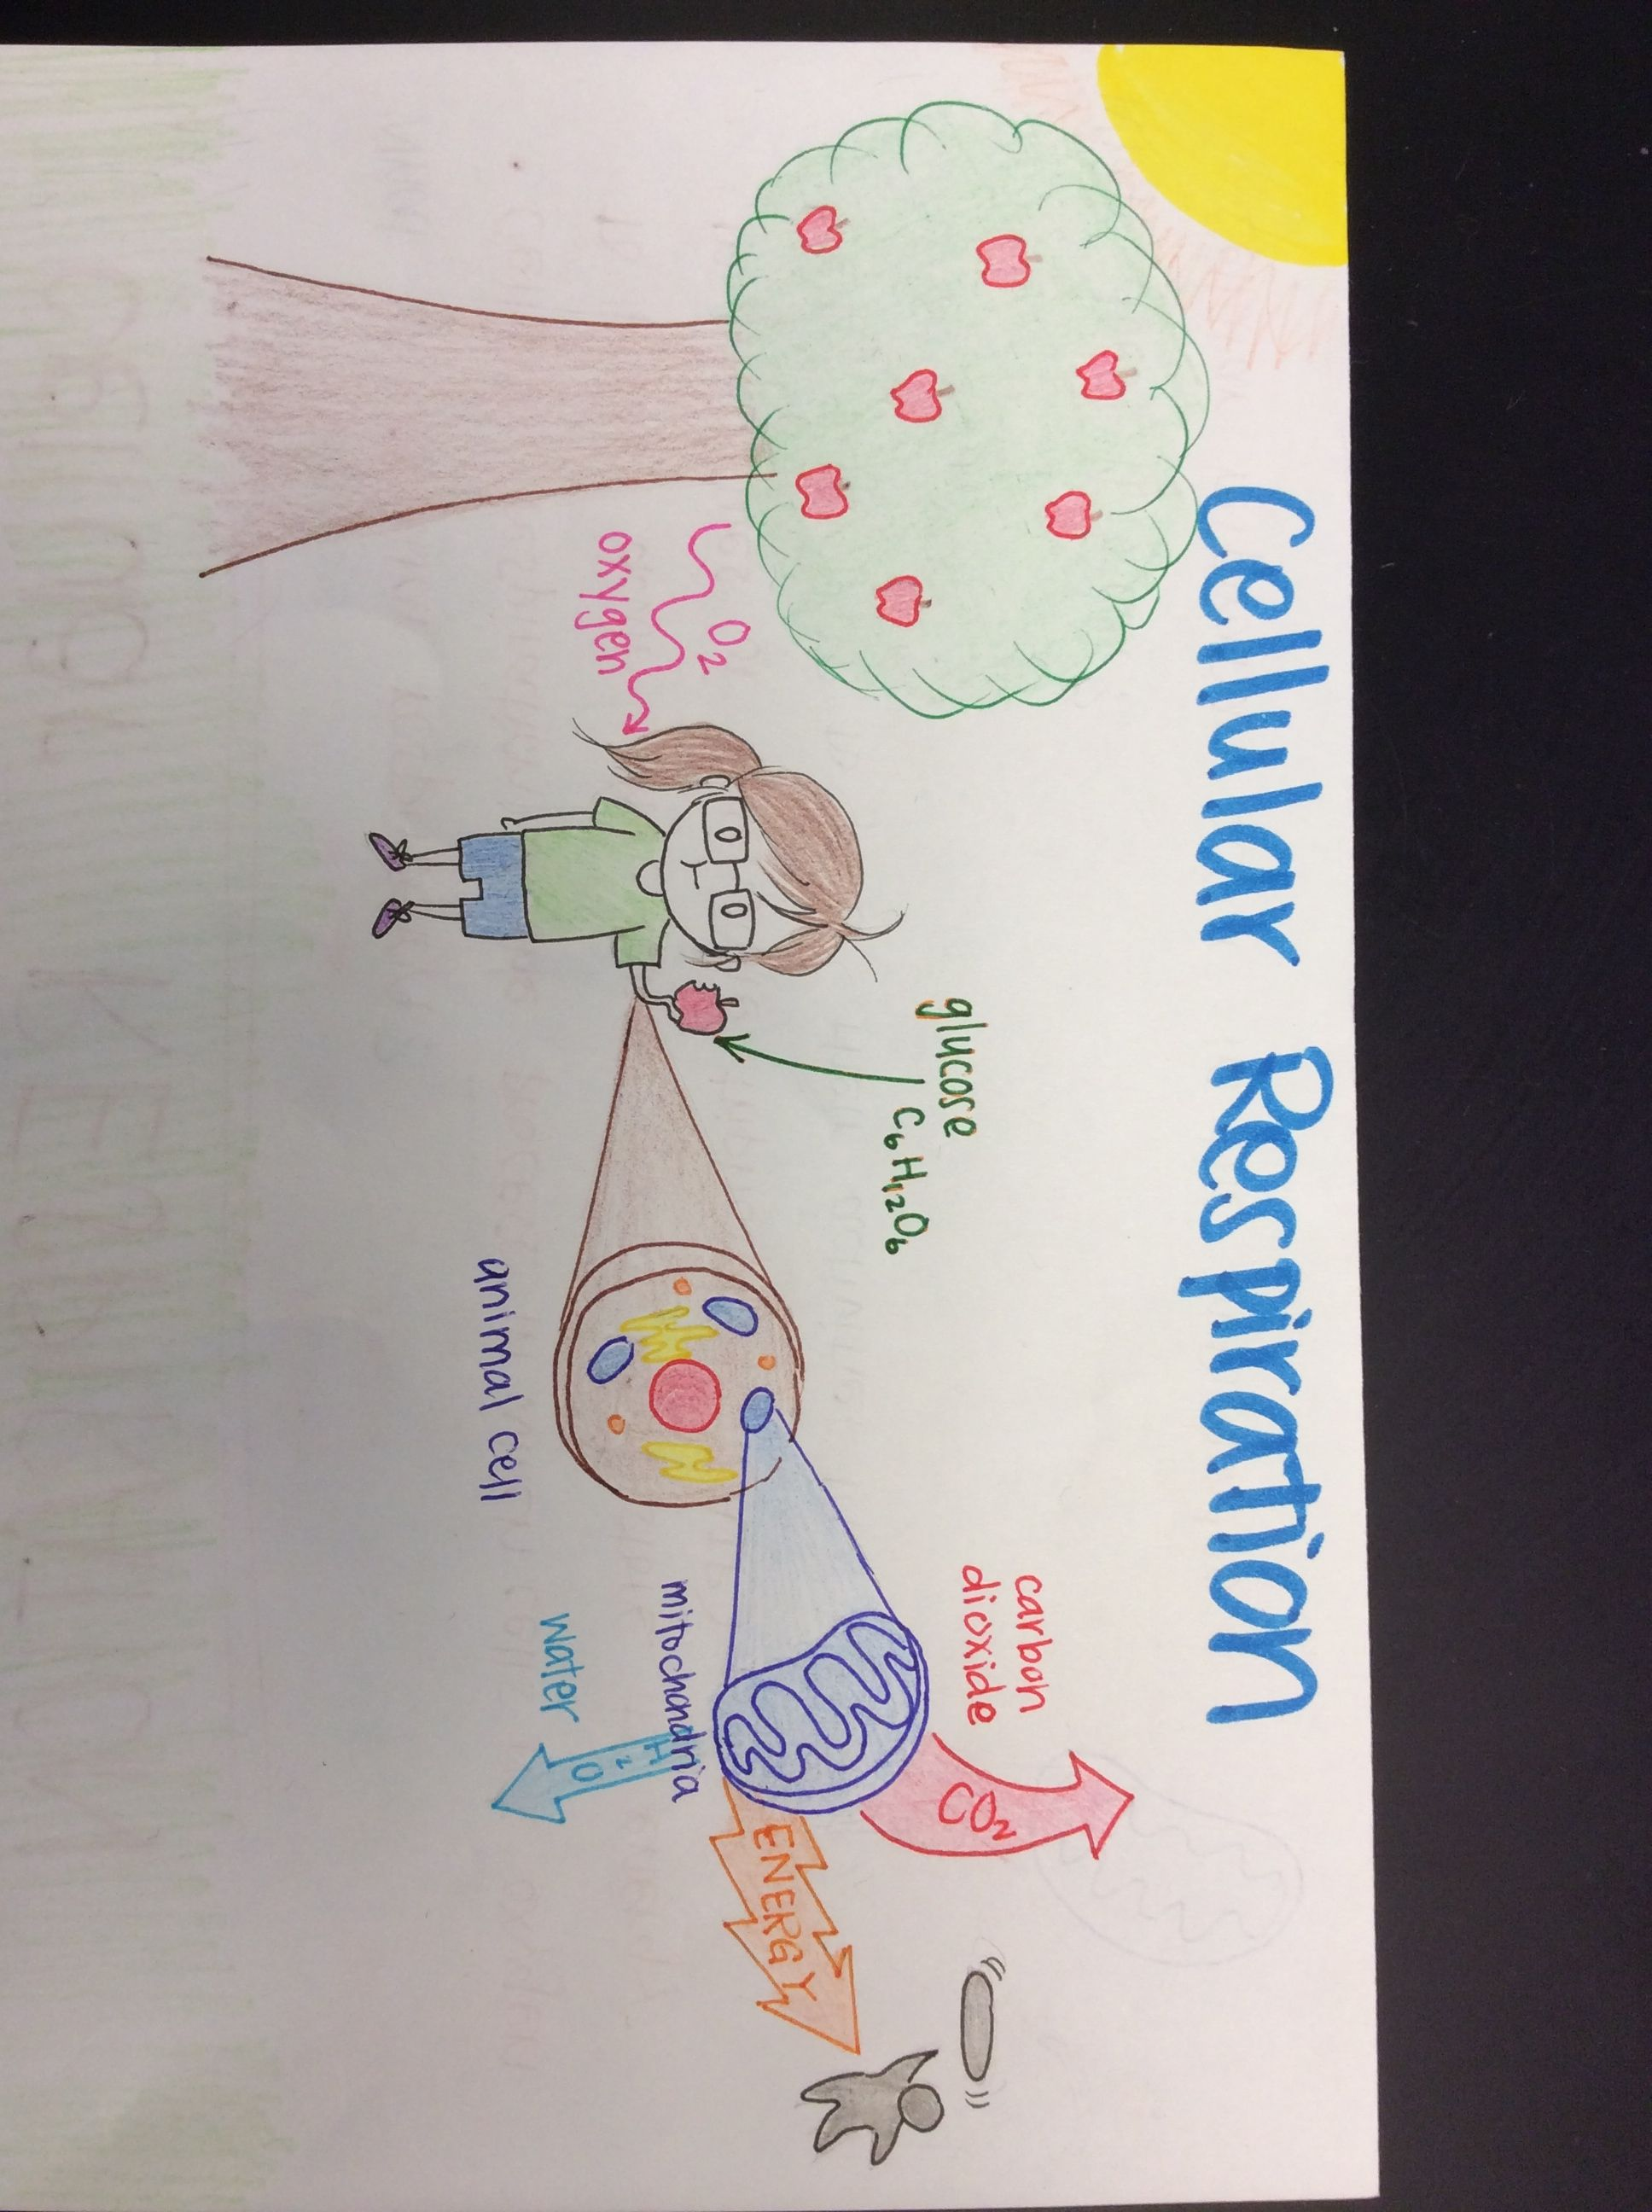 Cellular Respiration Diagram With Images